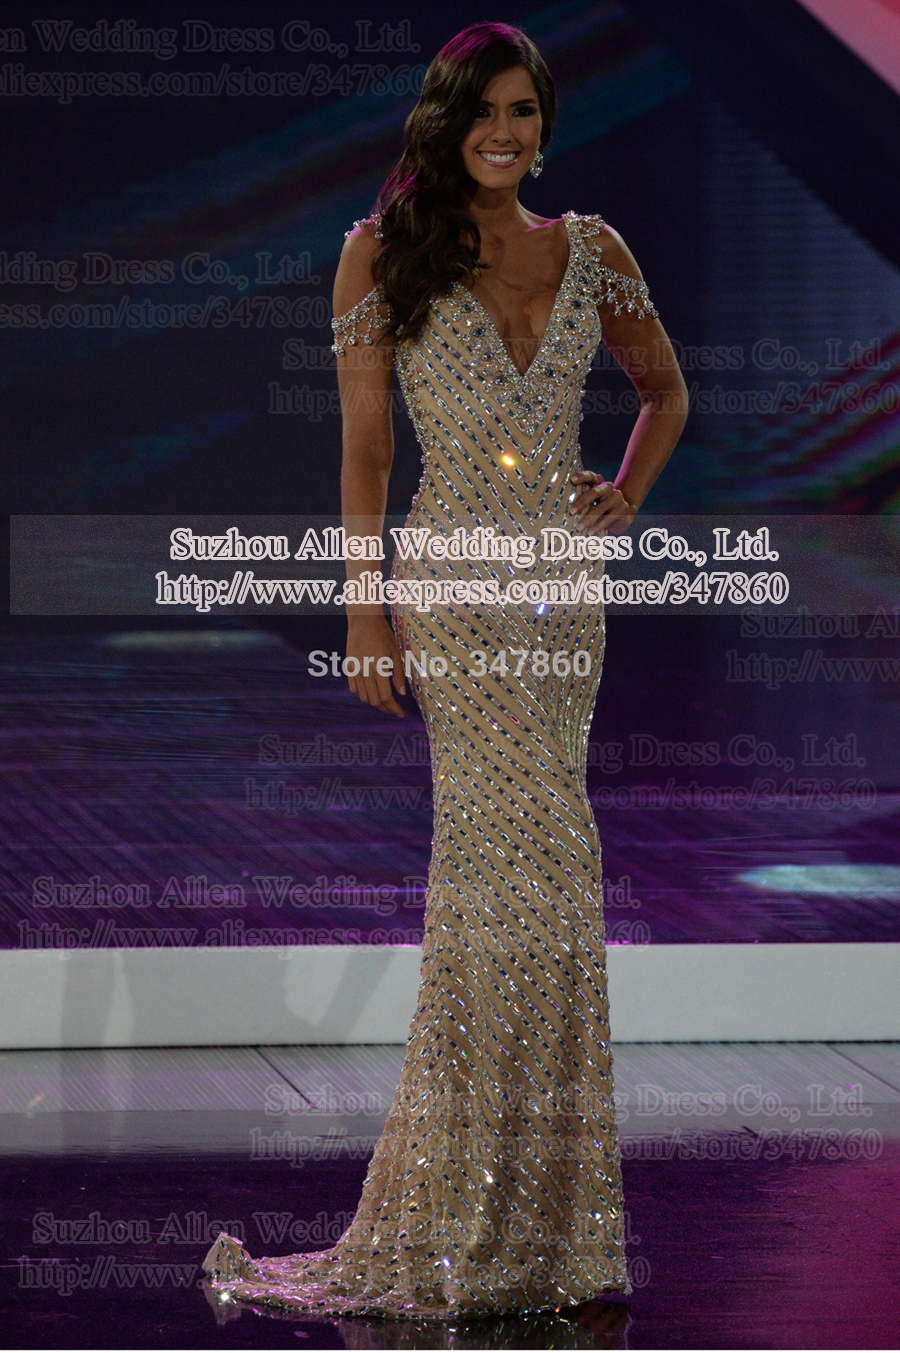 Miss Colombia 2016 Annual Global Paulina Vega Dieppa evening Beads  BlingBling Celebrity Red Carpet Dress 2014-in Celebrity-Inspired Dresses  from Weddings   ... 8c9789f5e5b7